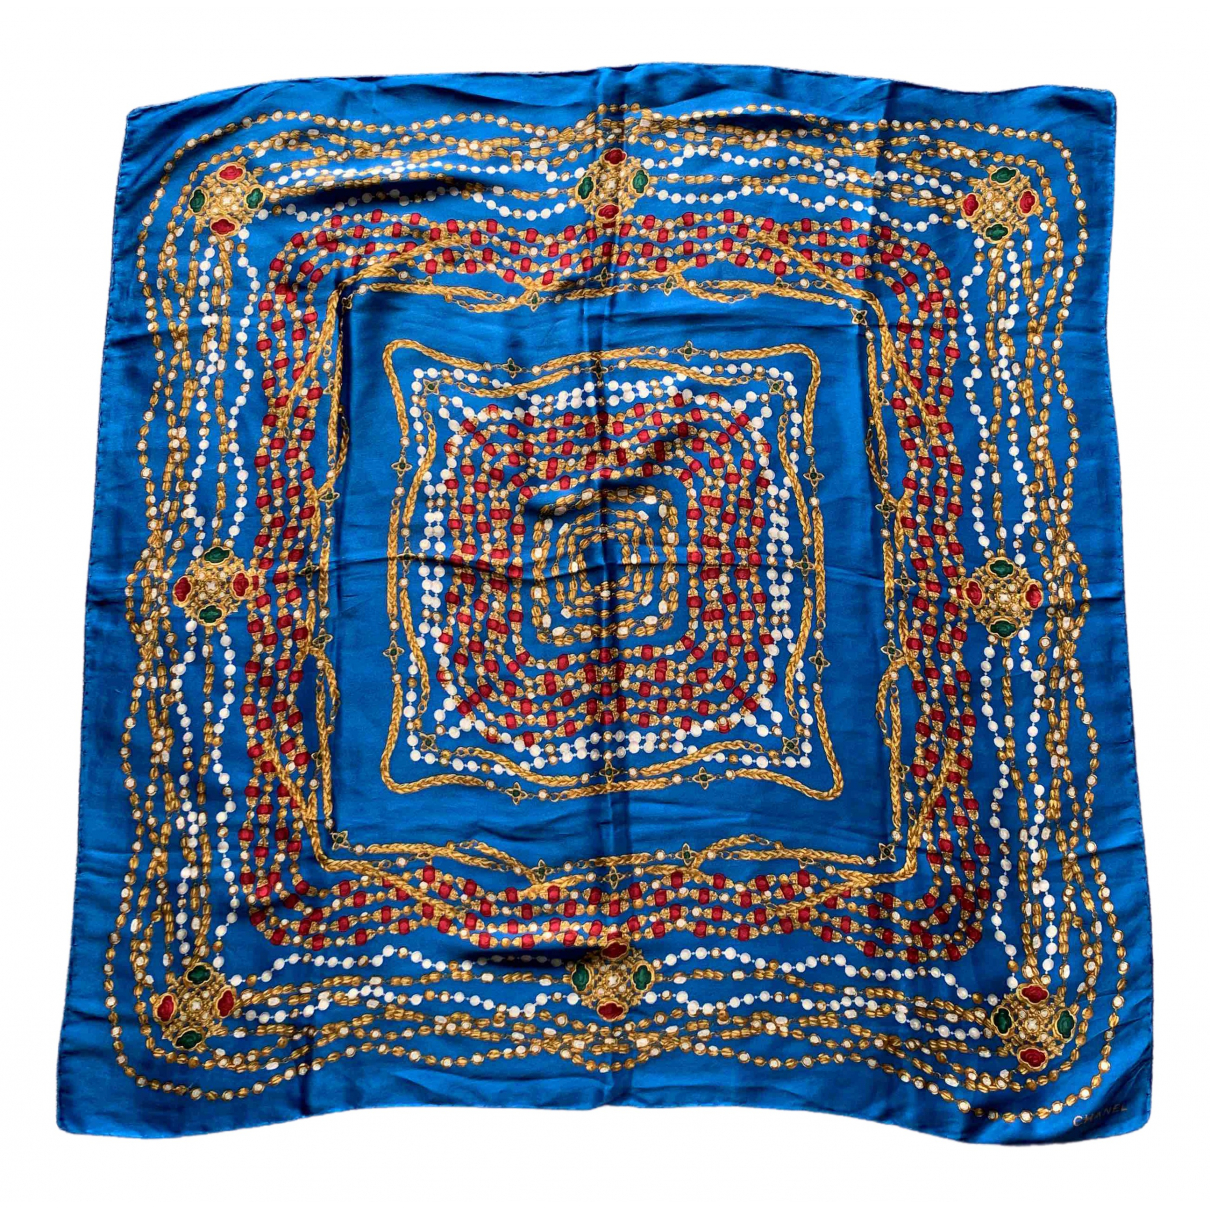 Chanel \N Blue Silk scarf for Women \N